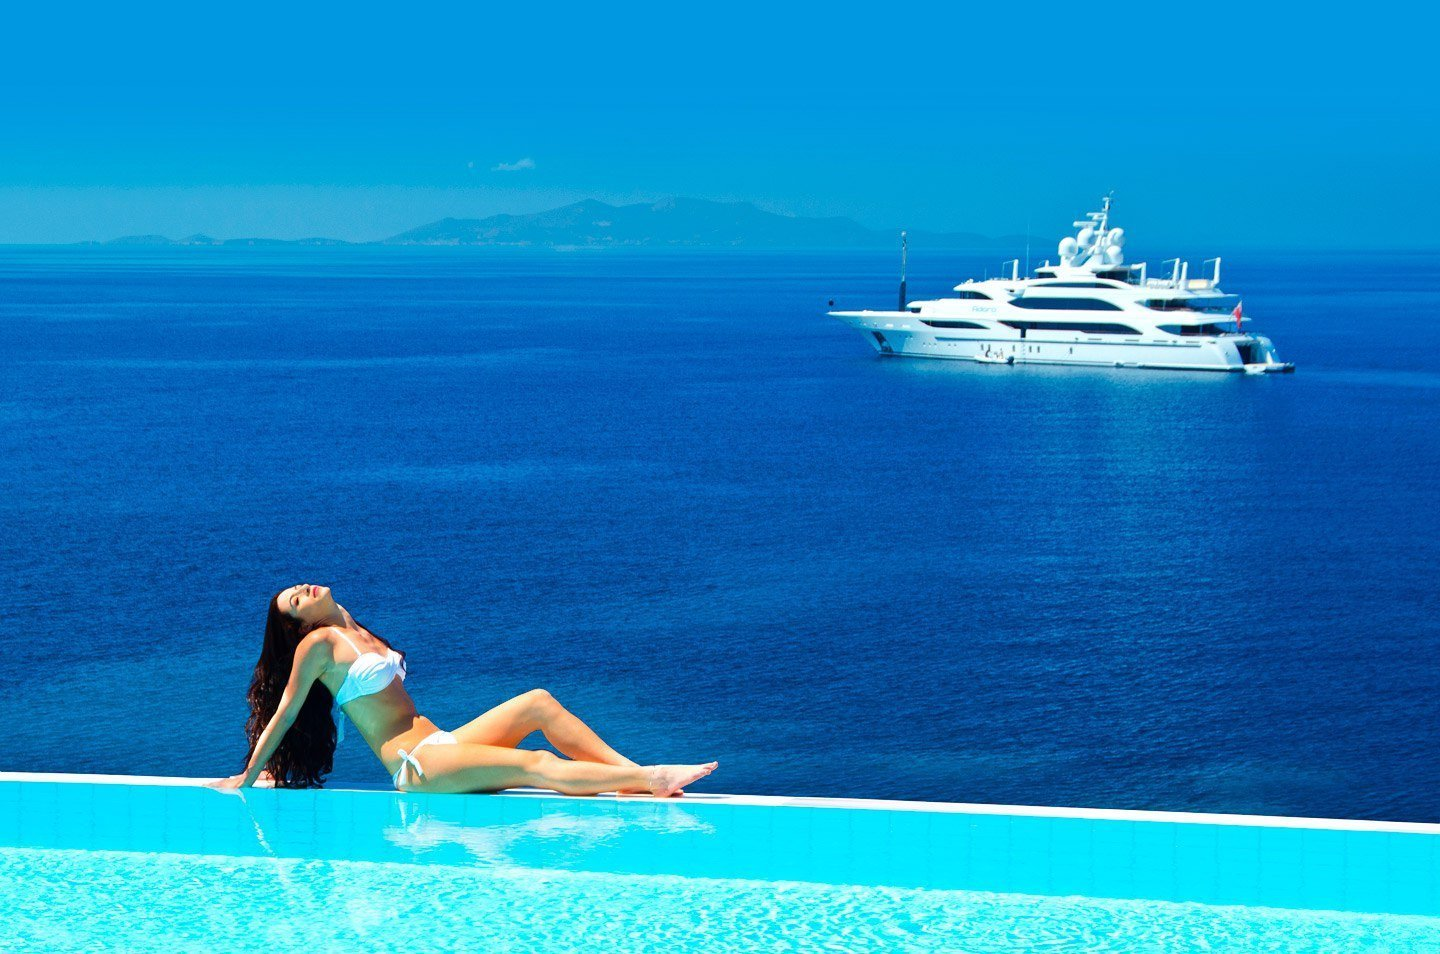 Lady sitting by the edge of an infinity pool overlooking the sea and a yacht.